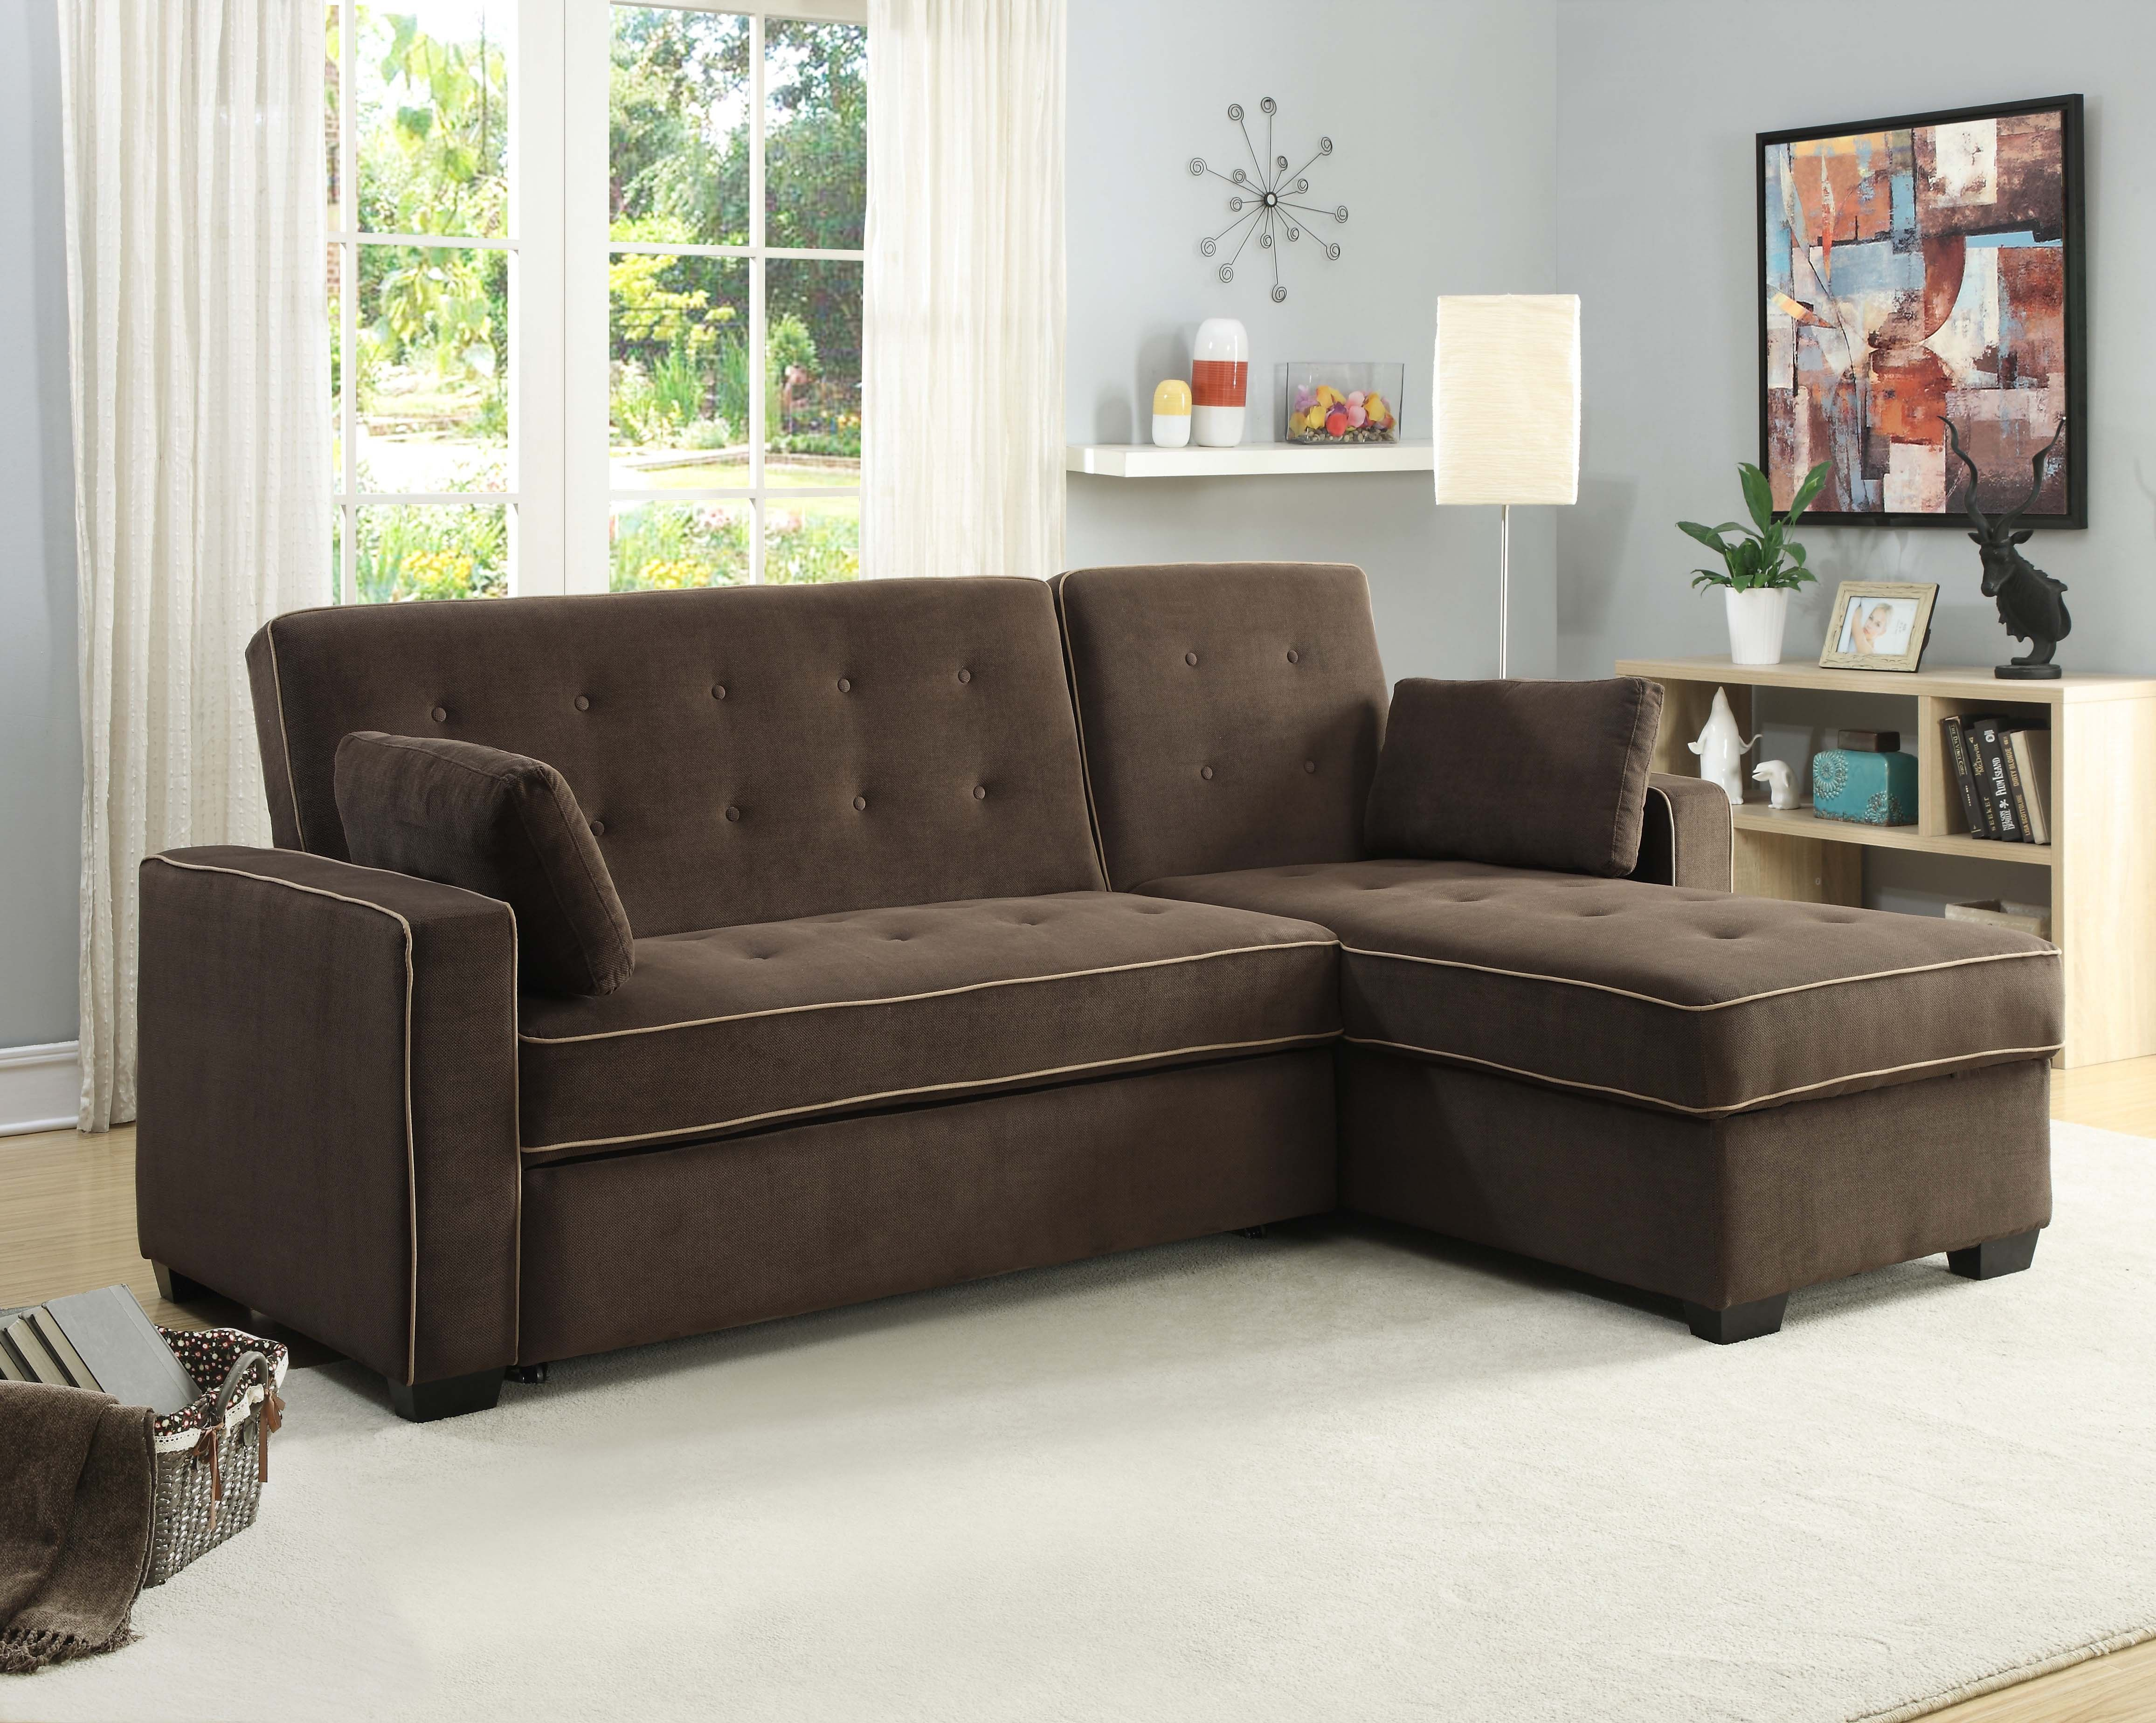 Sofa Lounger Bed And Chaise